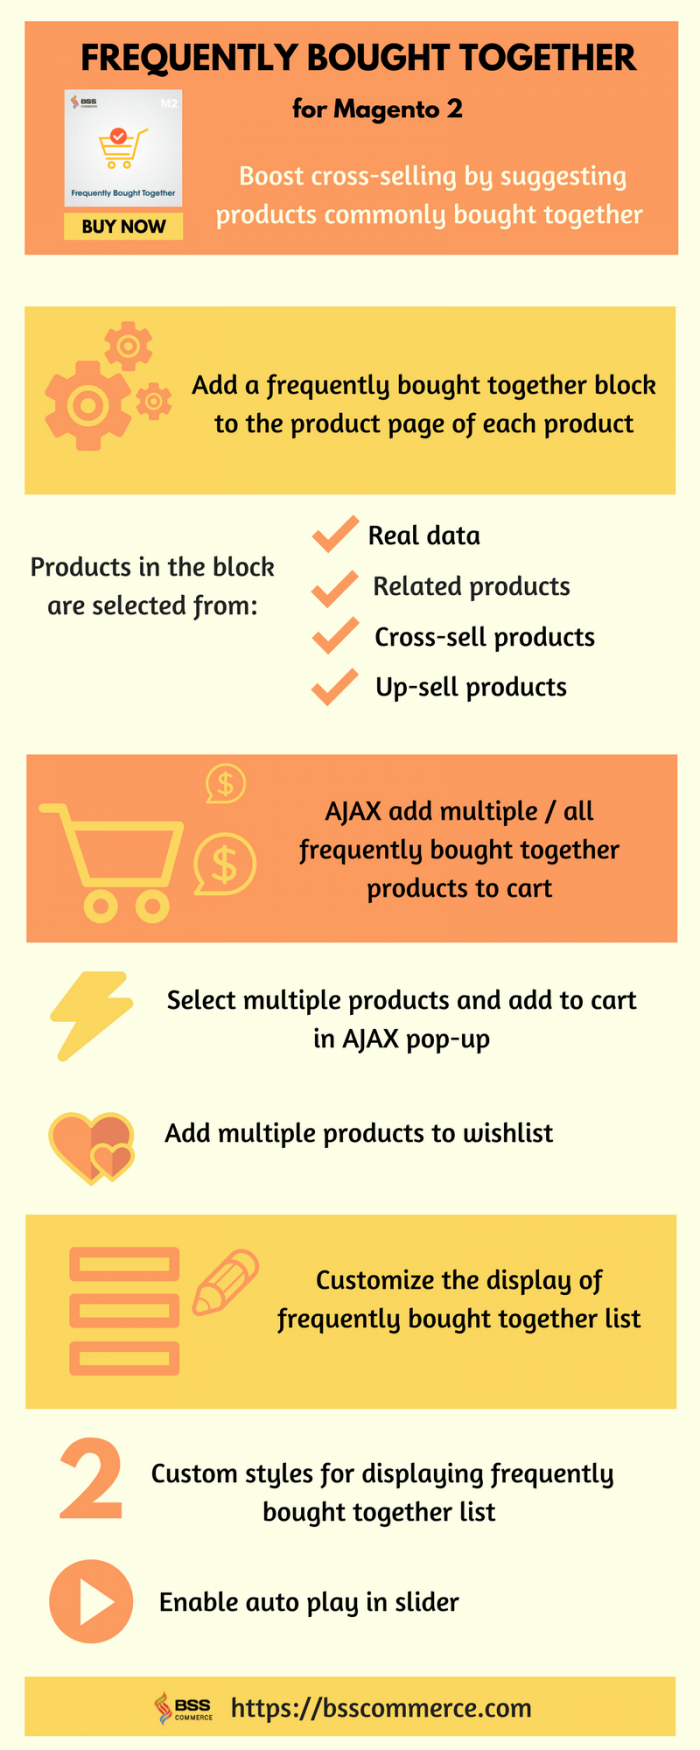 frequenlty-bought-togheter-m2-inforgraphic